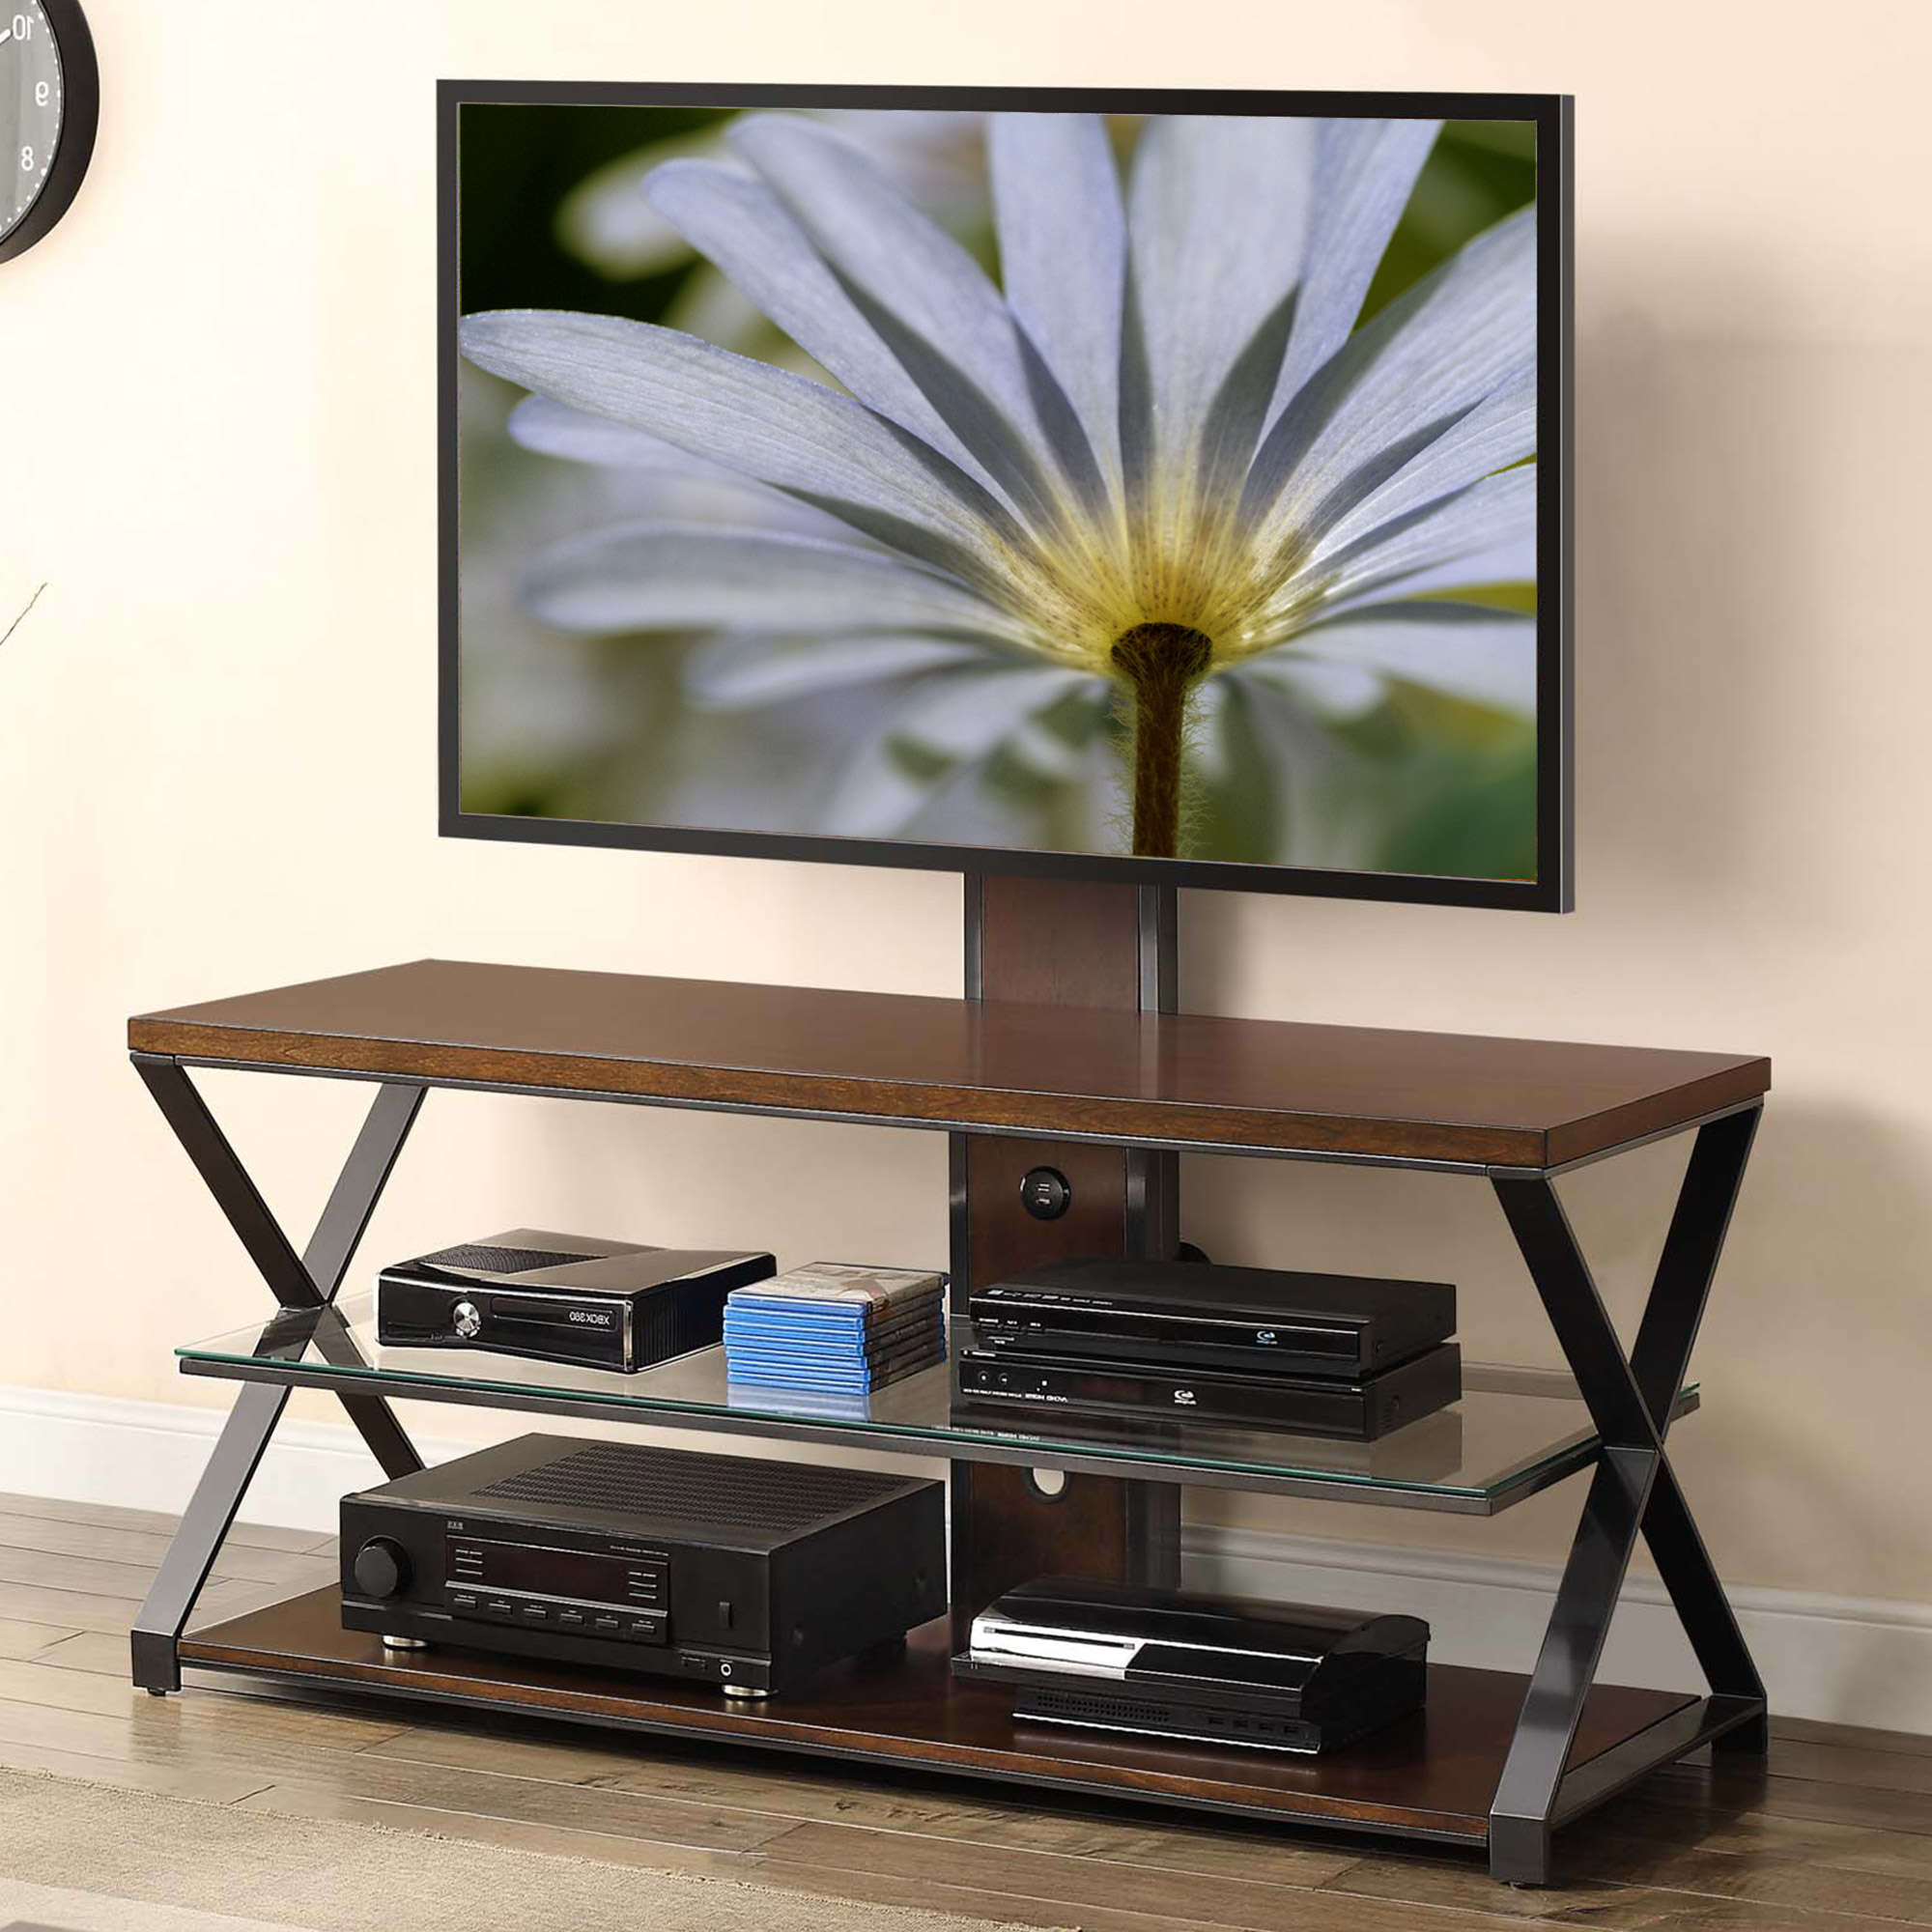 "Jaxon 3 In 1 Cognac Tv Stand For Tvs Up To 70"" – Walmart Throughout Jaxon 65 Inch Tv Stands (View 3 of 20)"